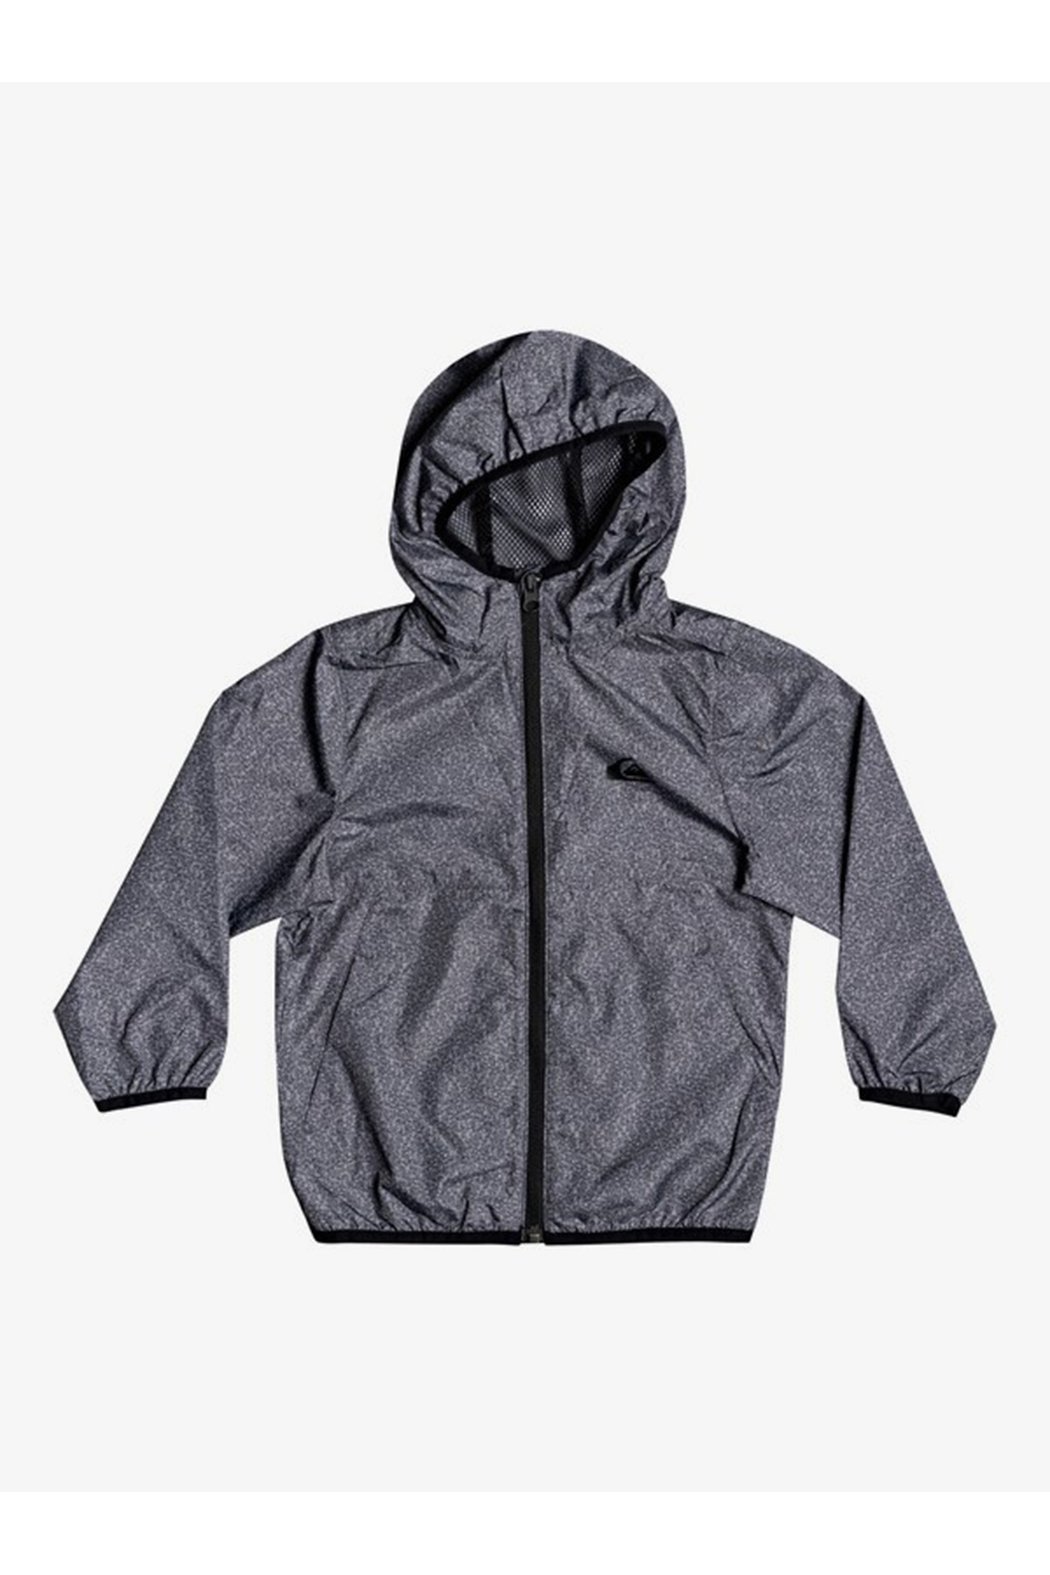 Quiksilver Everyday Jacket Hooded Windbreaker 2-7X - Main Image